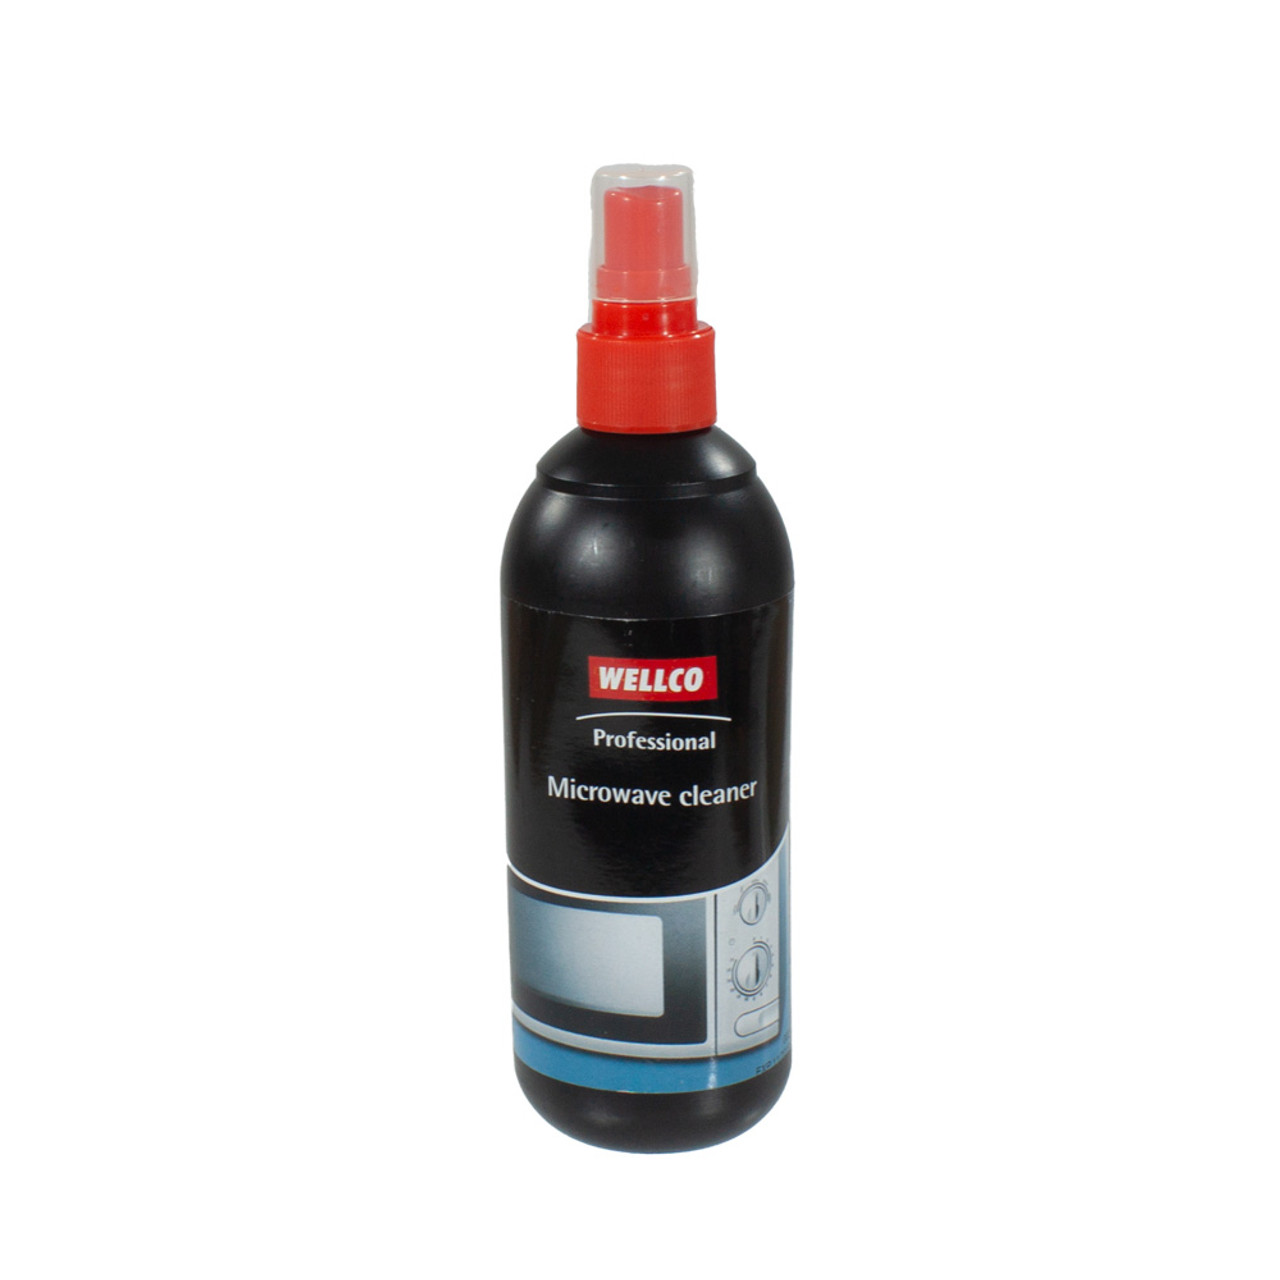 wellco professional microwave cleaner wel4006